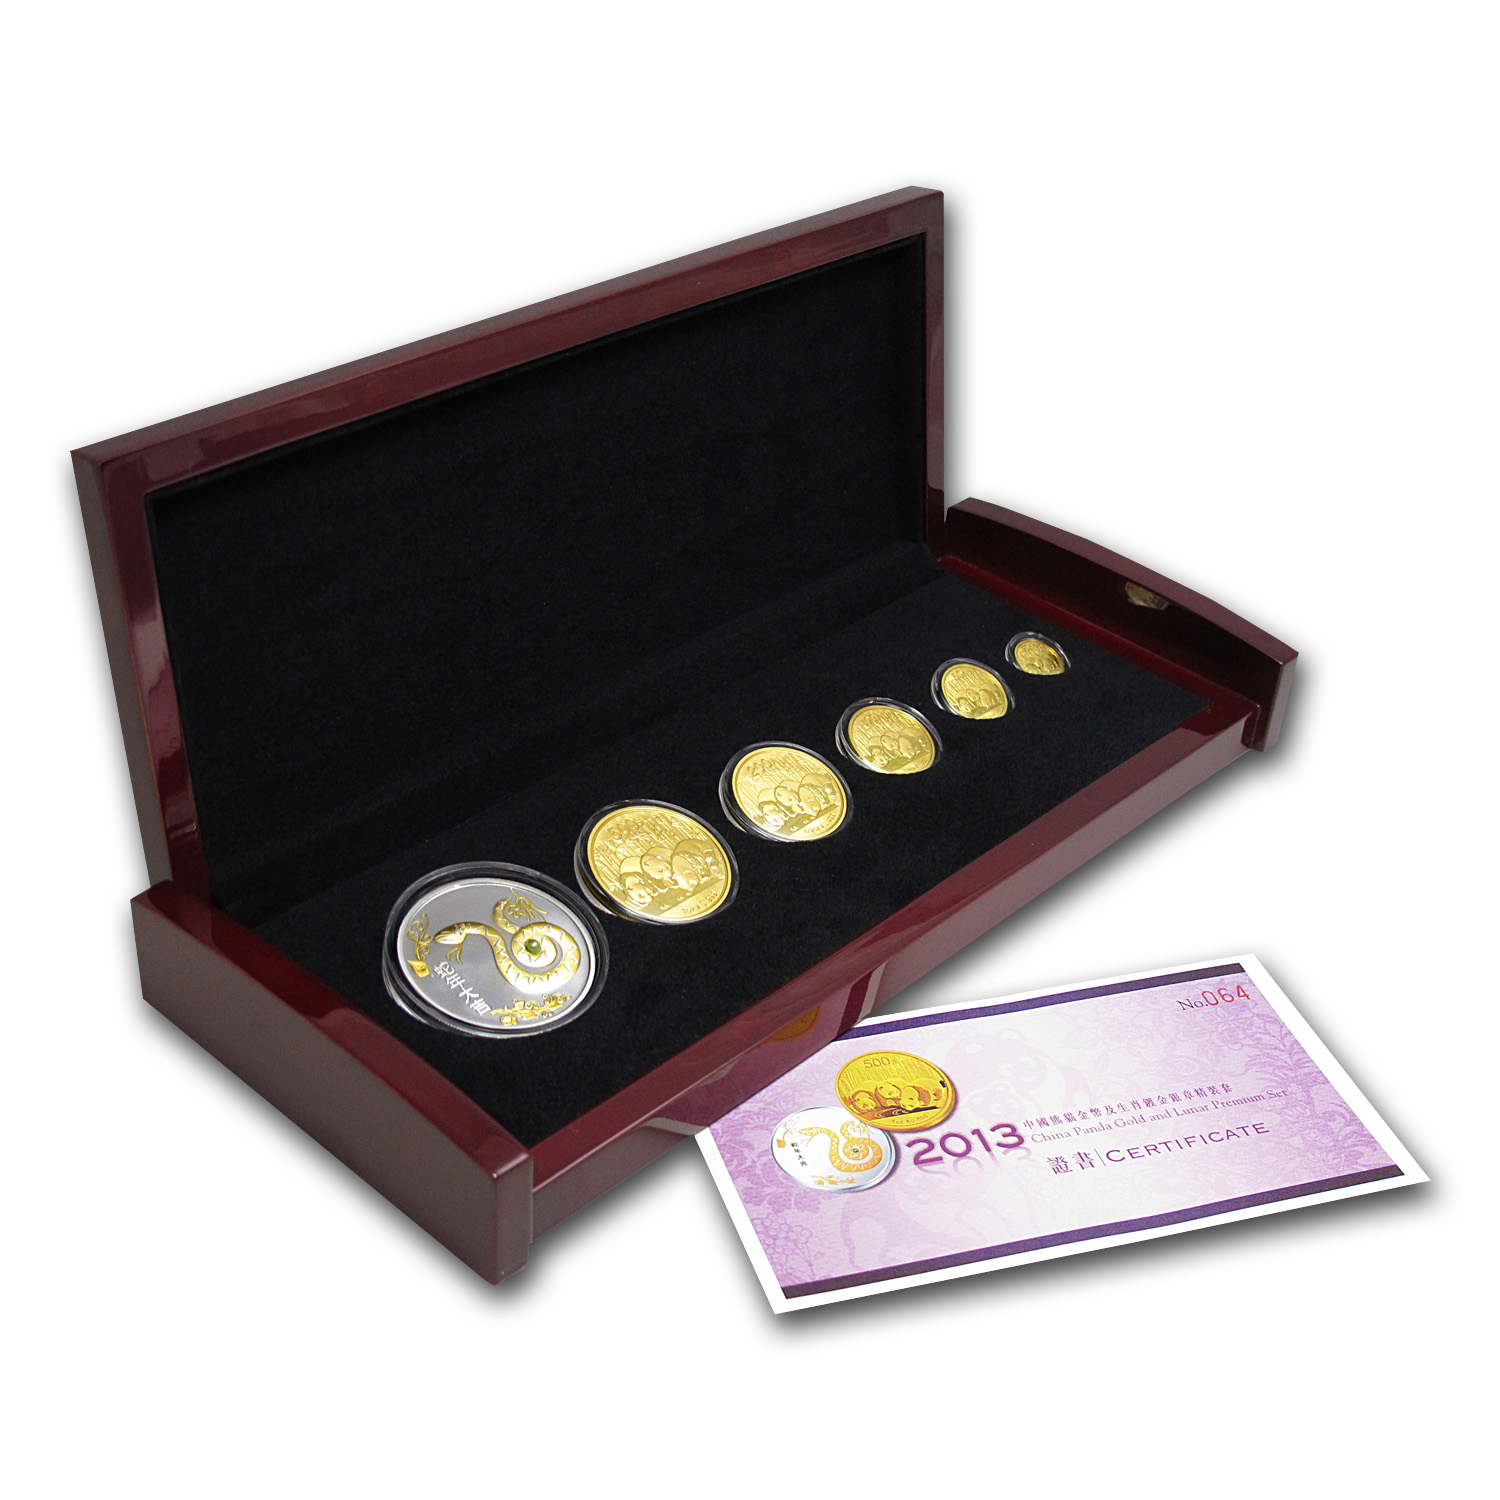 2013 China Panda Gold and Lunar Premium Set (Year of the Snake)